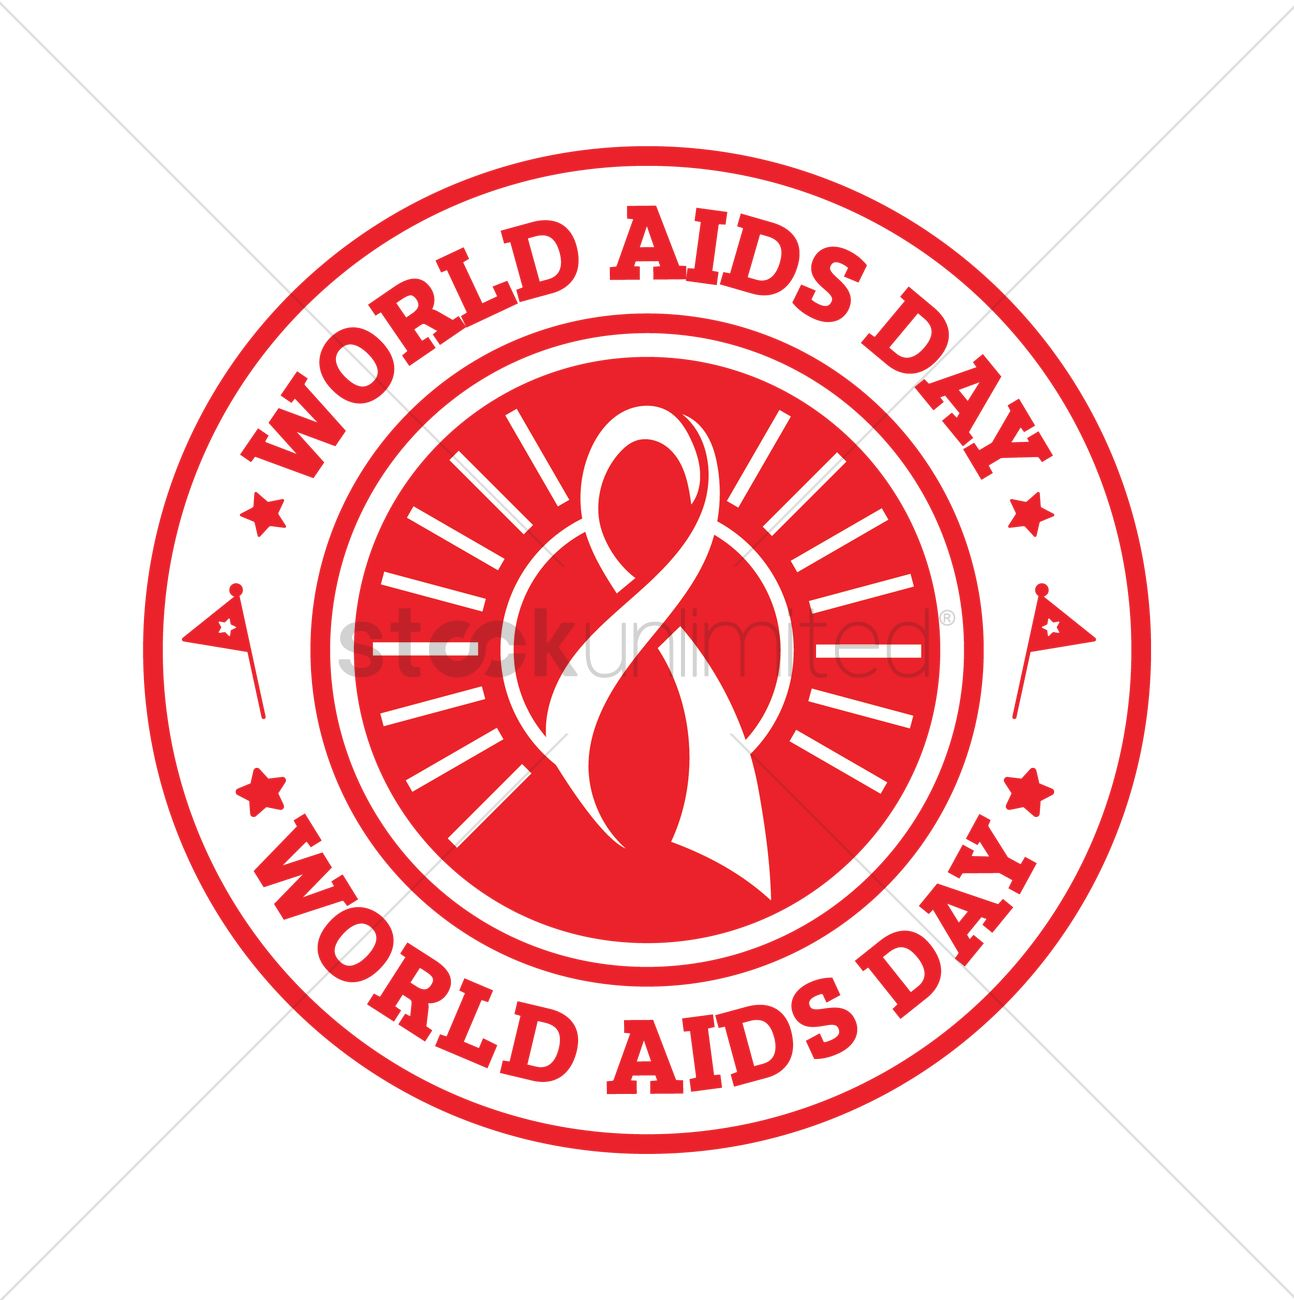 World aids day design Vector Image - 1976056 | StockUnlimited